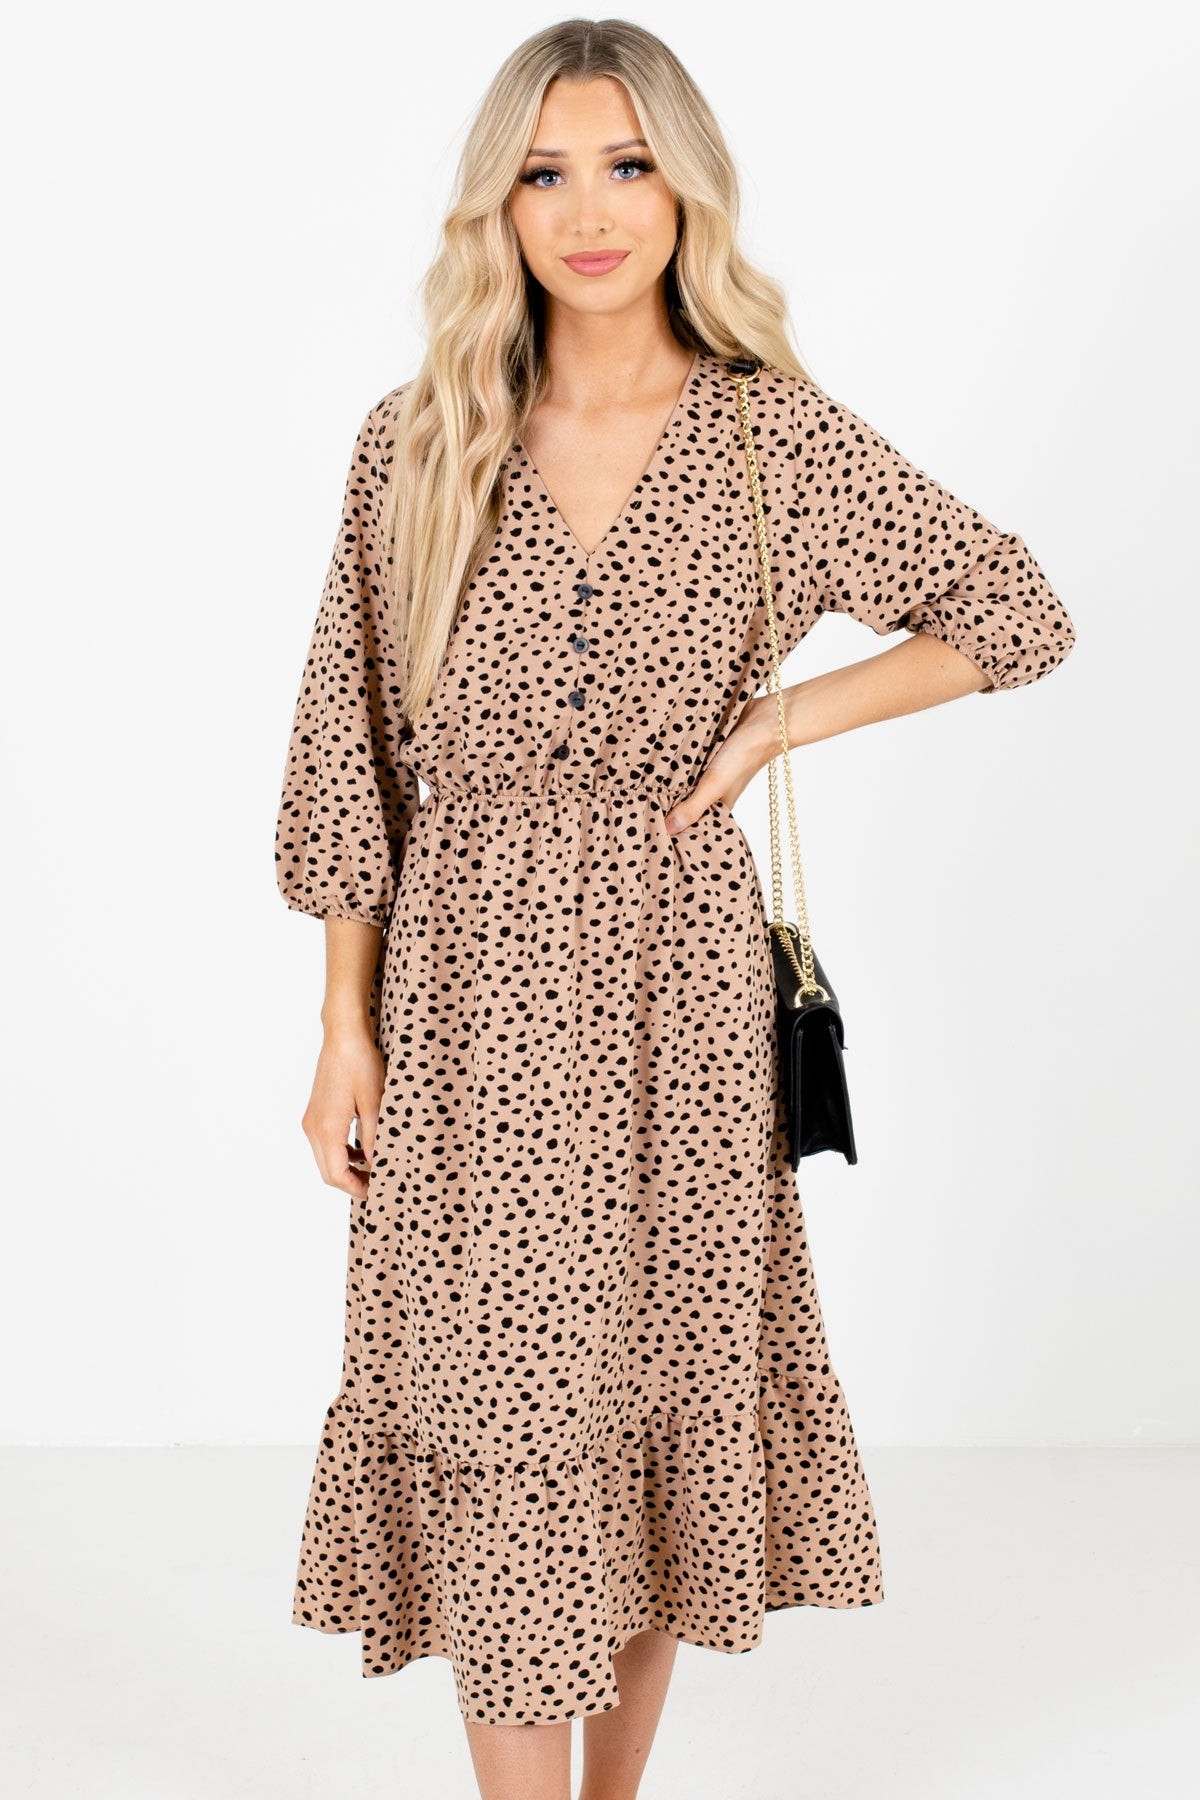 Brown and Black Polka Dot Patterned Boutique Midi Dresses for Women